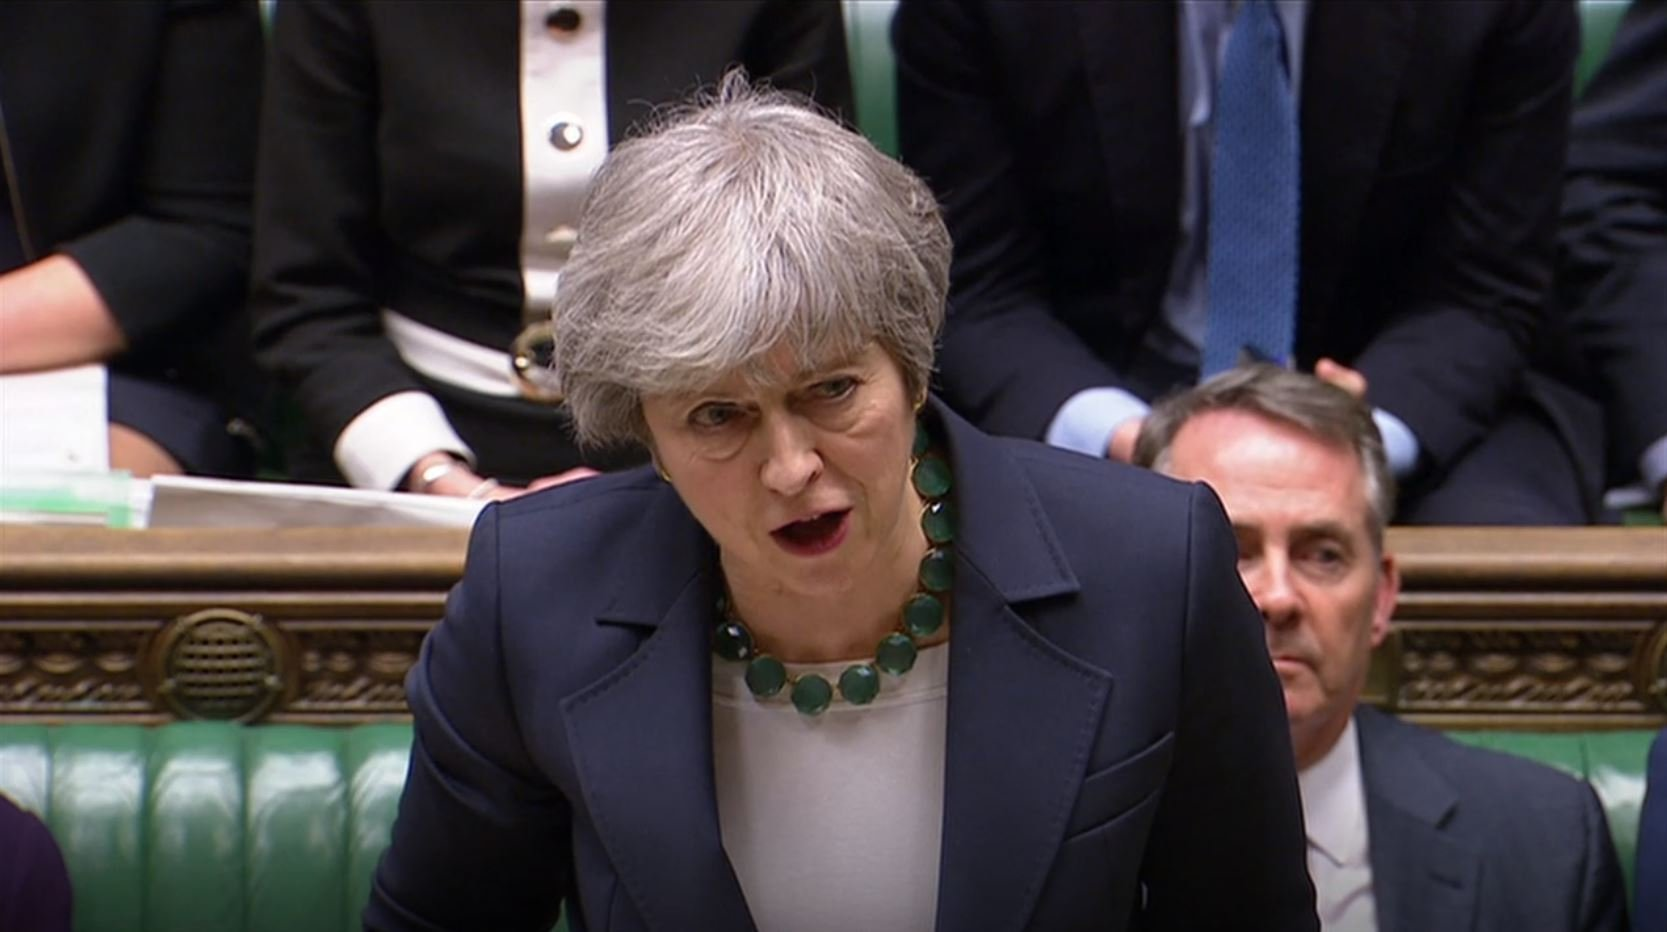 Prime Minister Theresa May speaking in parliament